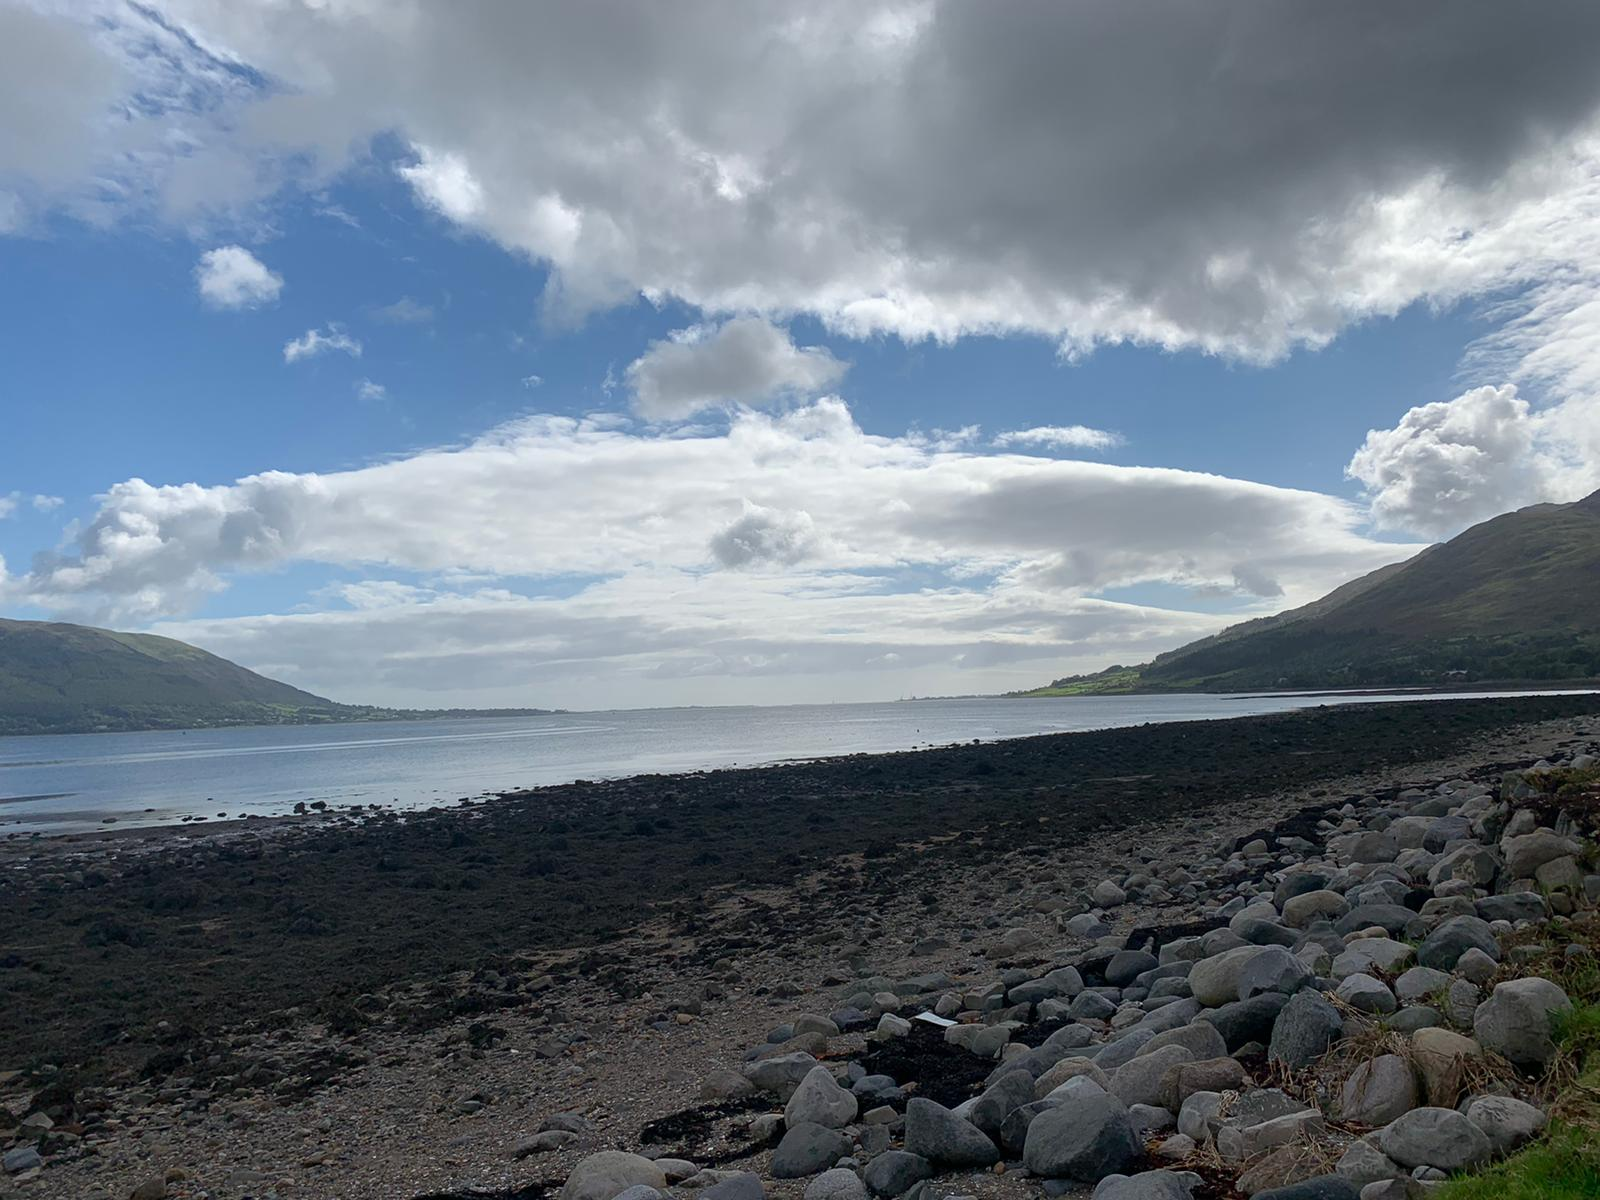 View from Carlingford, Co. Louth